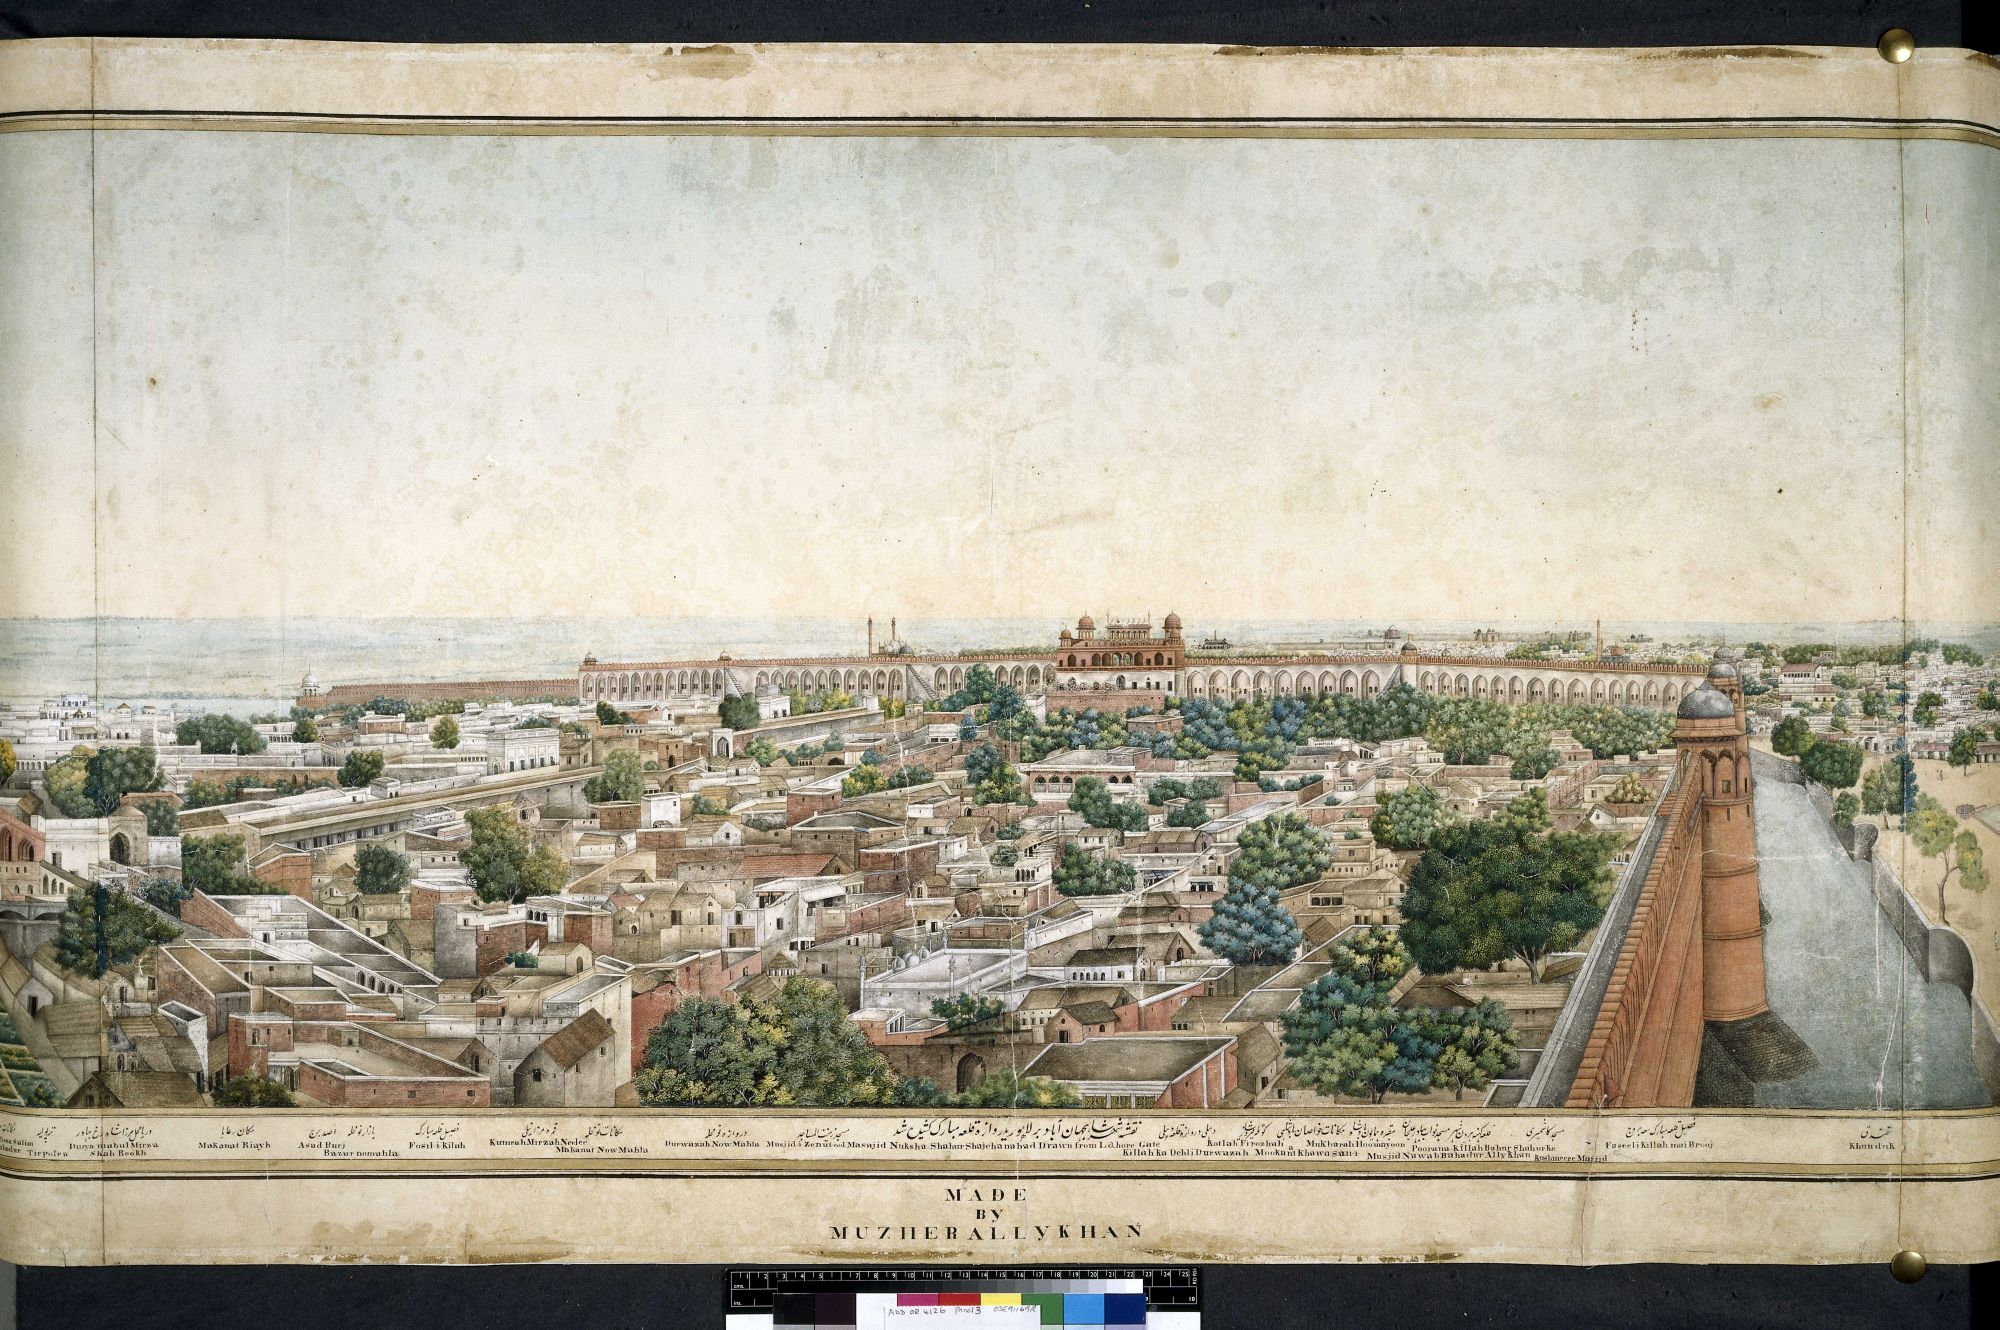 A Panorama of Delhi taken from the top of the Lahore Gate of the Red Fort (3), by Mazhar Ali Khan.